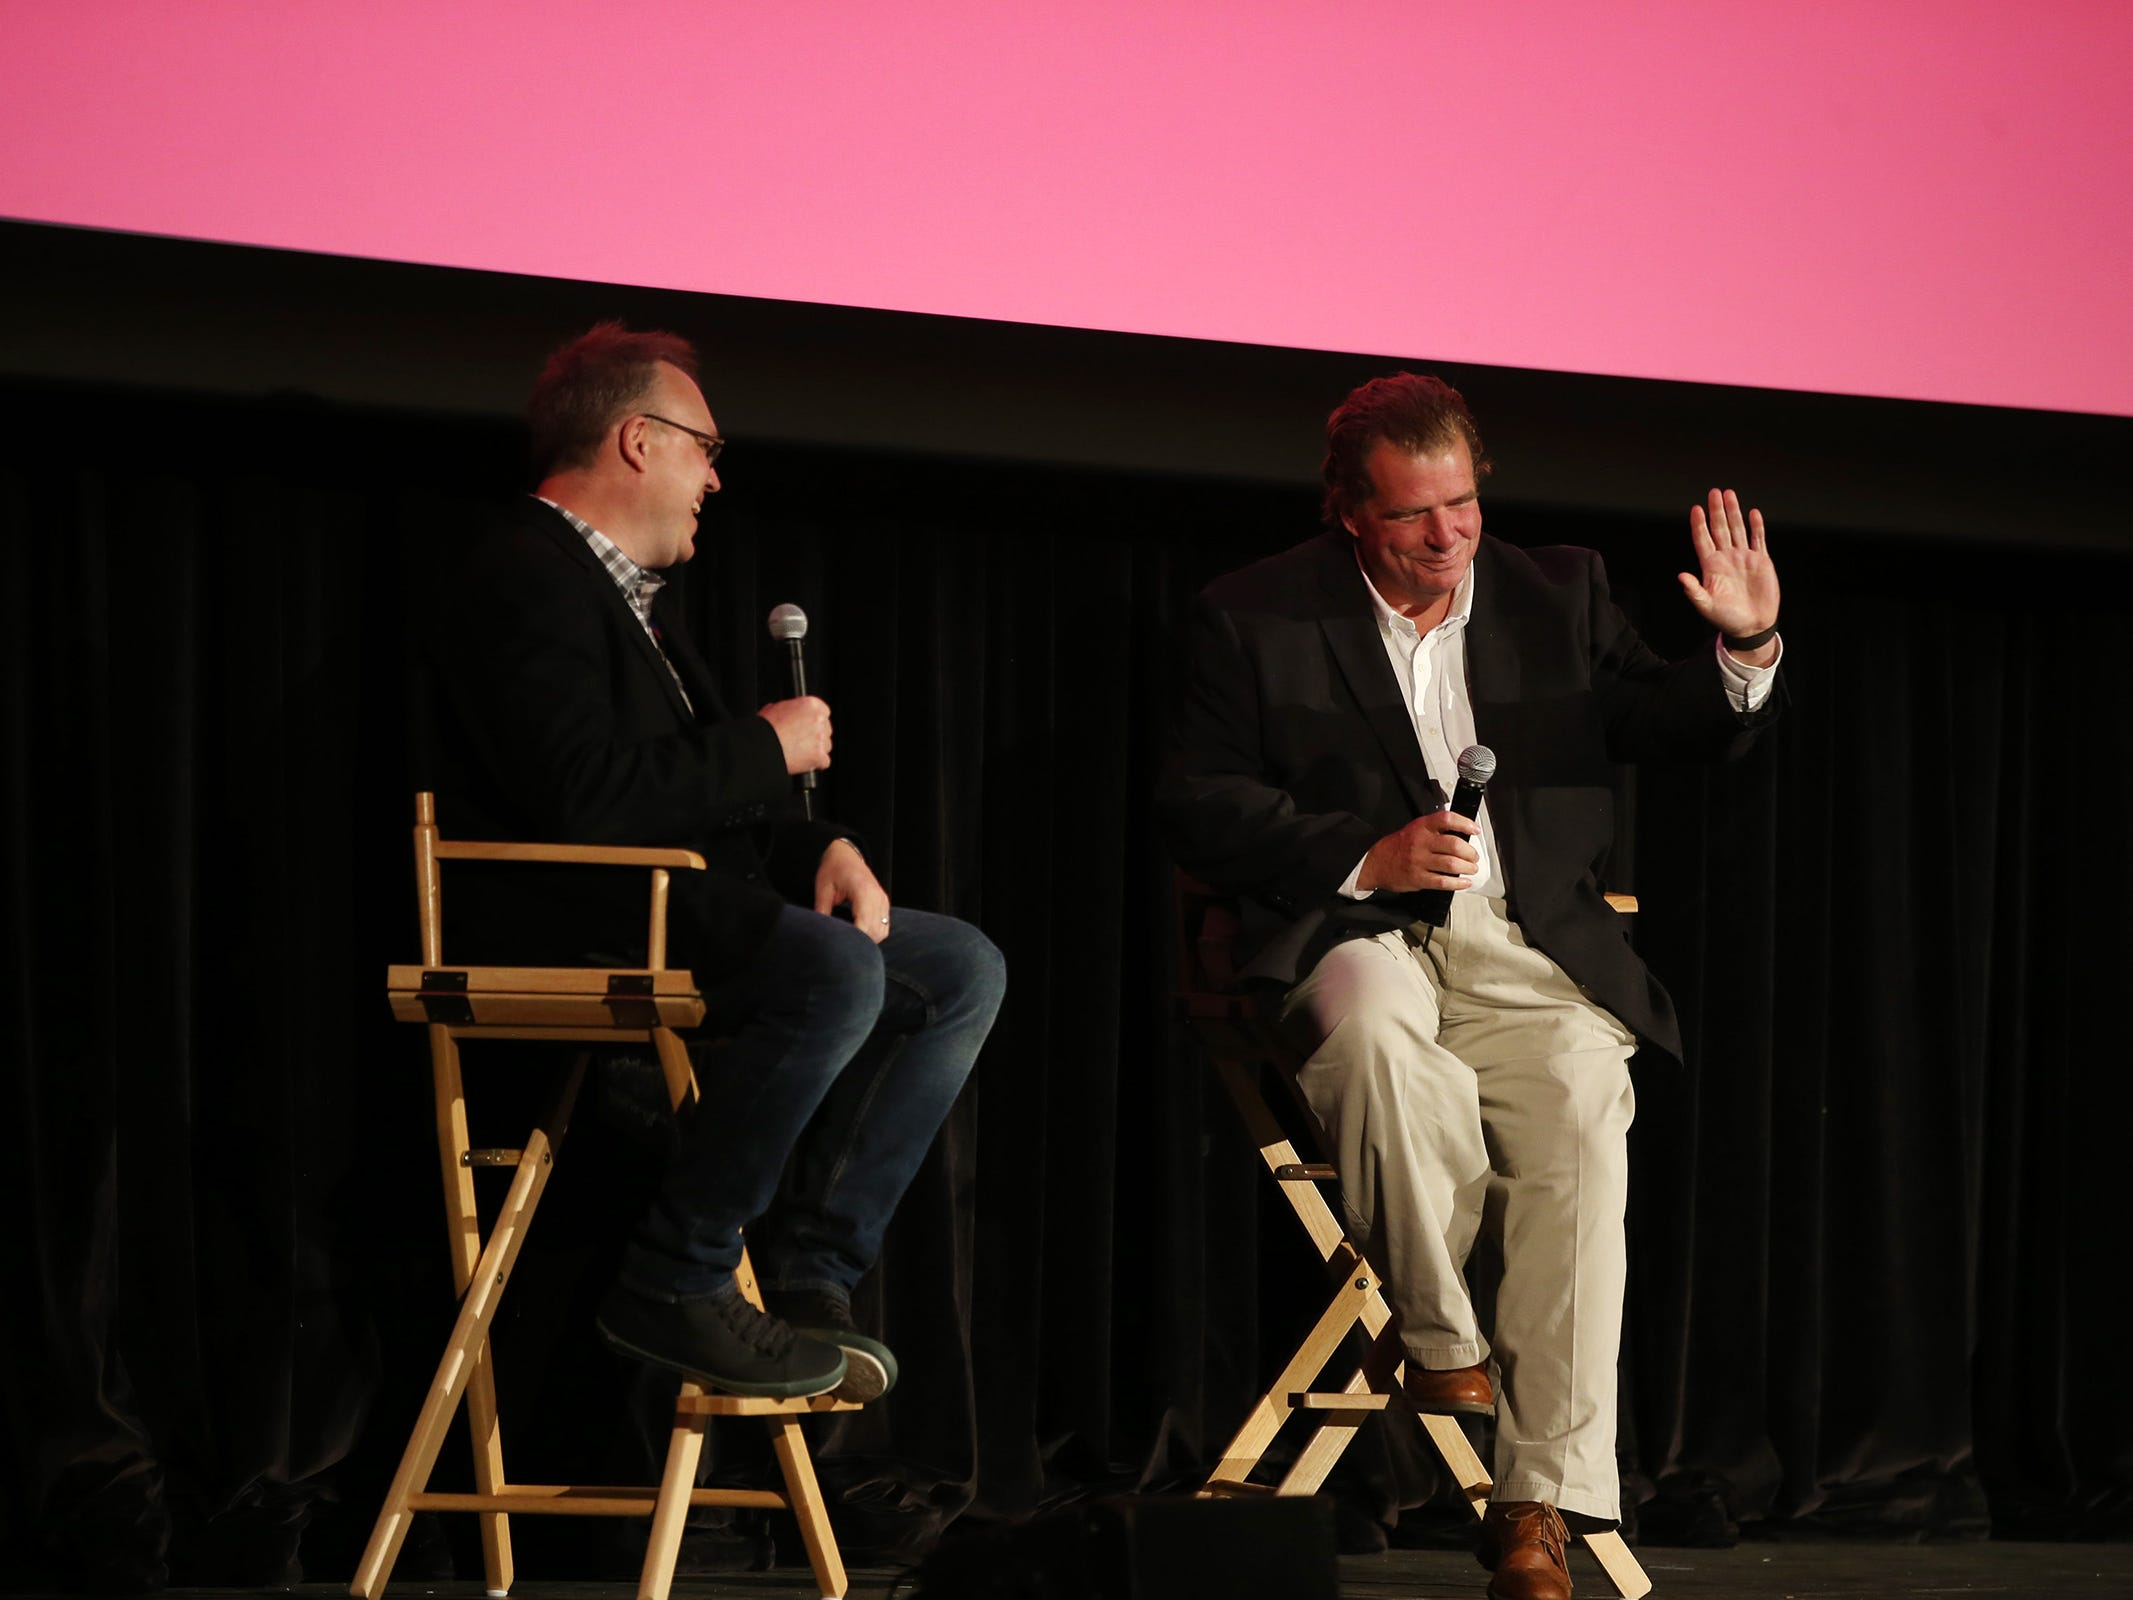 """(Right) Tom Jones, founder and principal of Halo Group speaks to (left) Chris Phillips, moderator, during a panel discussion after """"Asbury Park: Riot, Redemption and Rock 'N' Roll"""" documentary screening at the Paramount Theatre during the Asbury Park Music and Film Festival in Asbury Park, NJ Sunday, April 28, 2019.  #APMFF"""